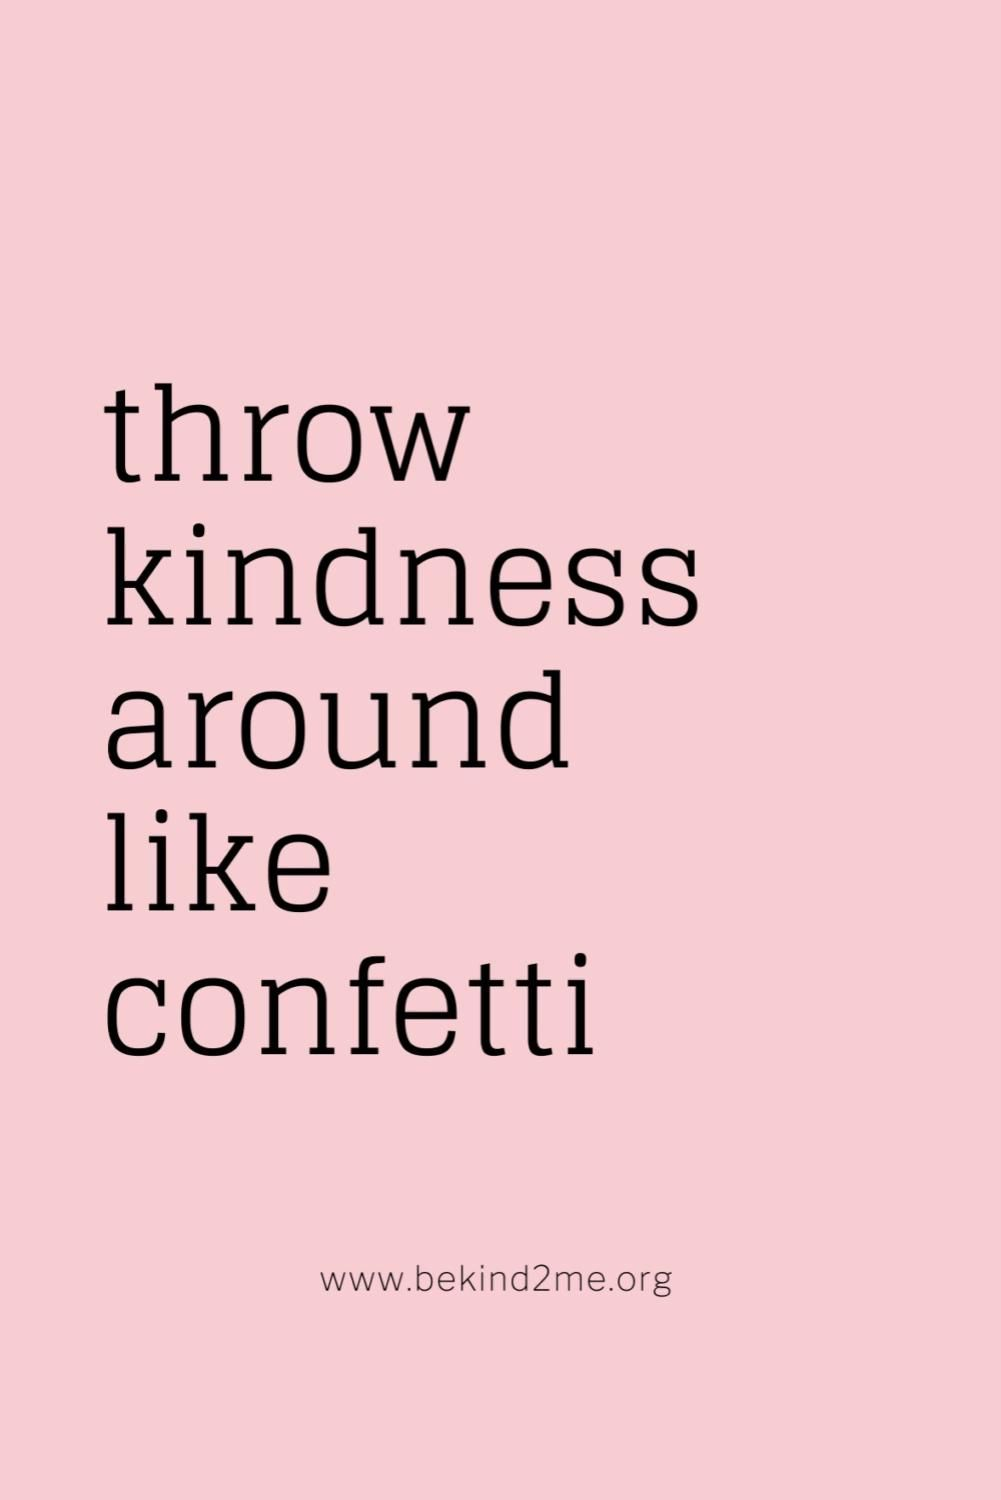 Inspirational Quotes   throw kindness around like confetti ....